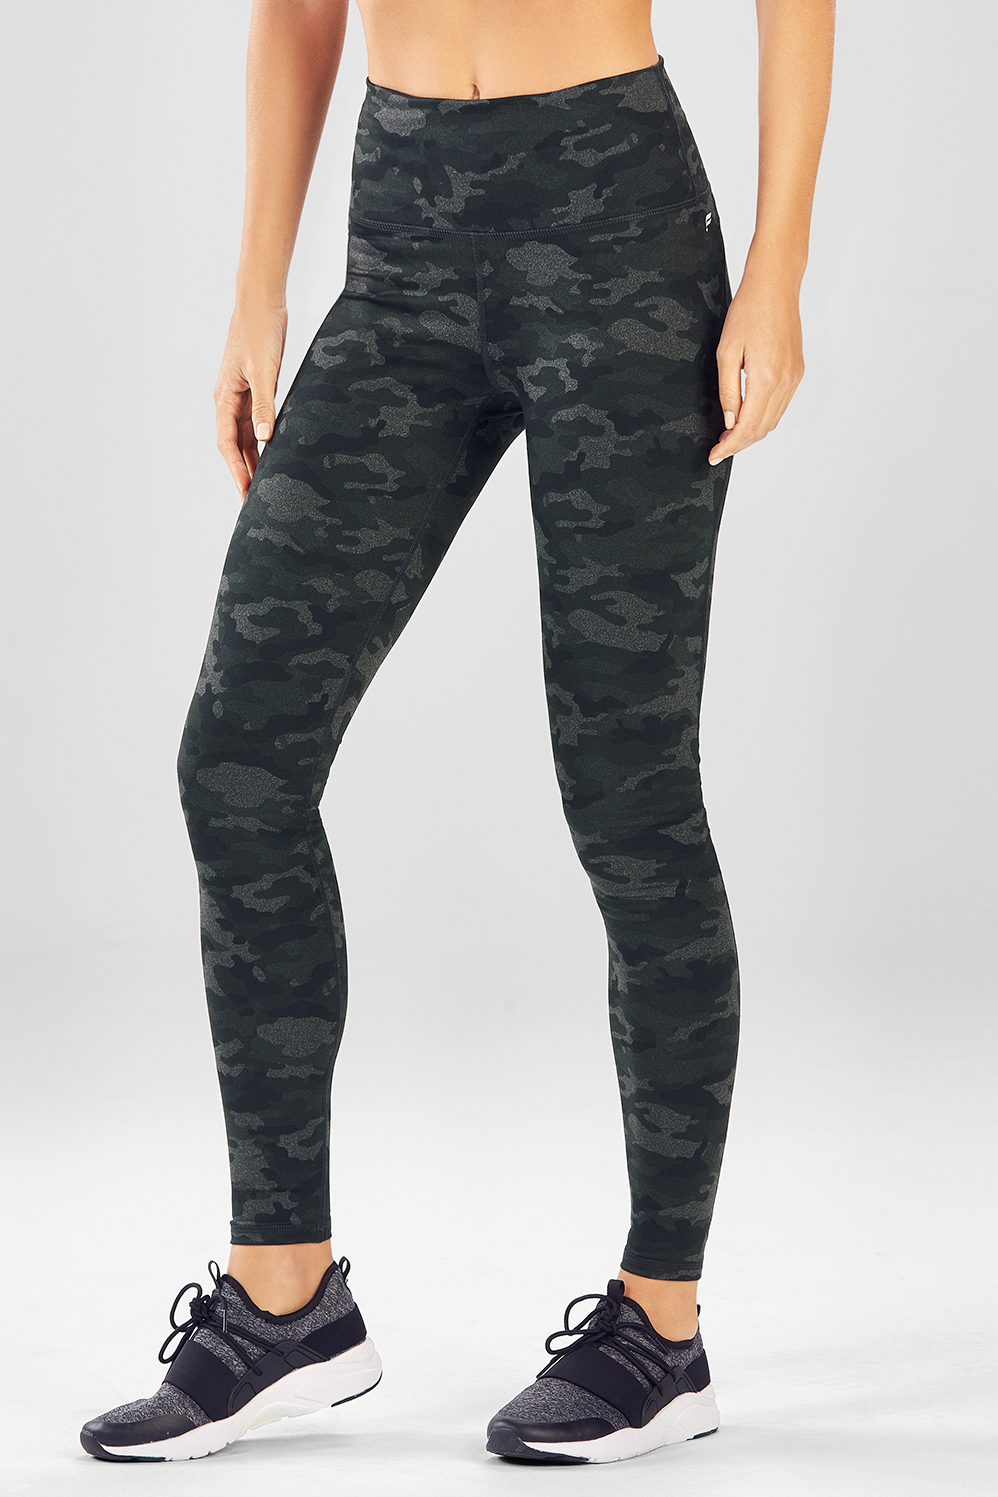 0b76ee8c1531b High-Waisted Printed PowerHold® Leggings - Charcoal Camo